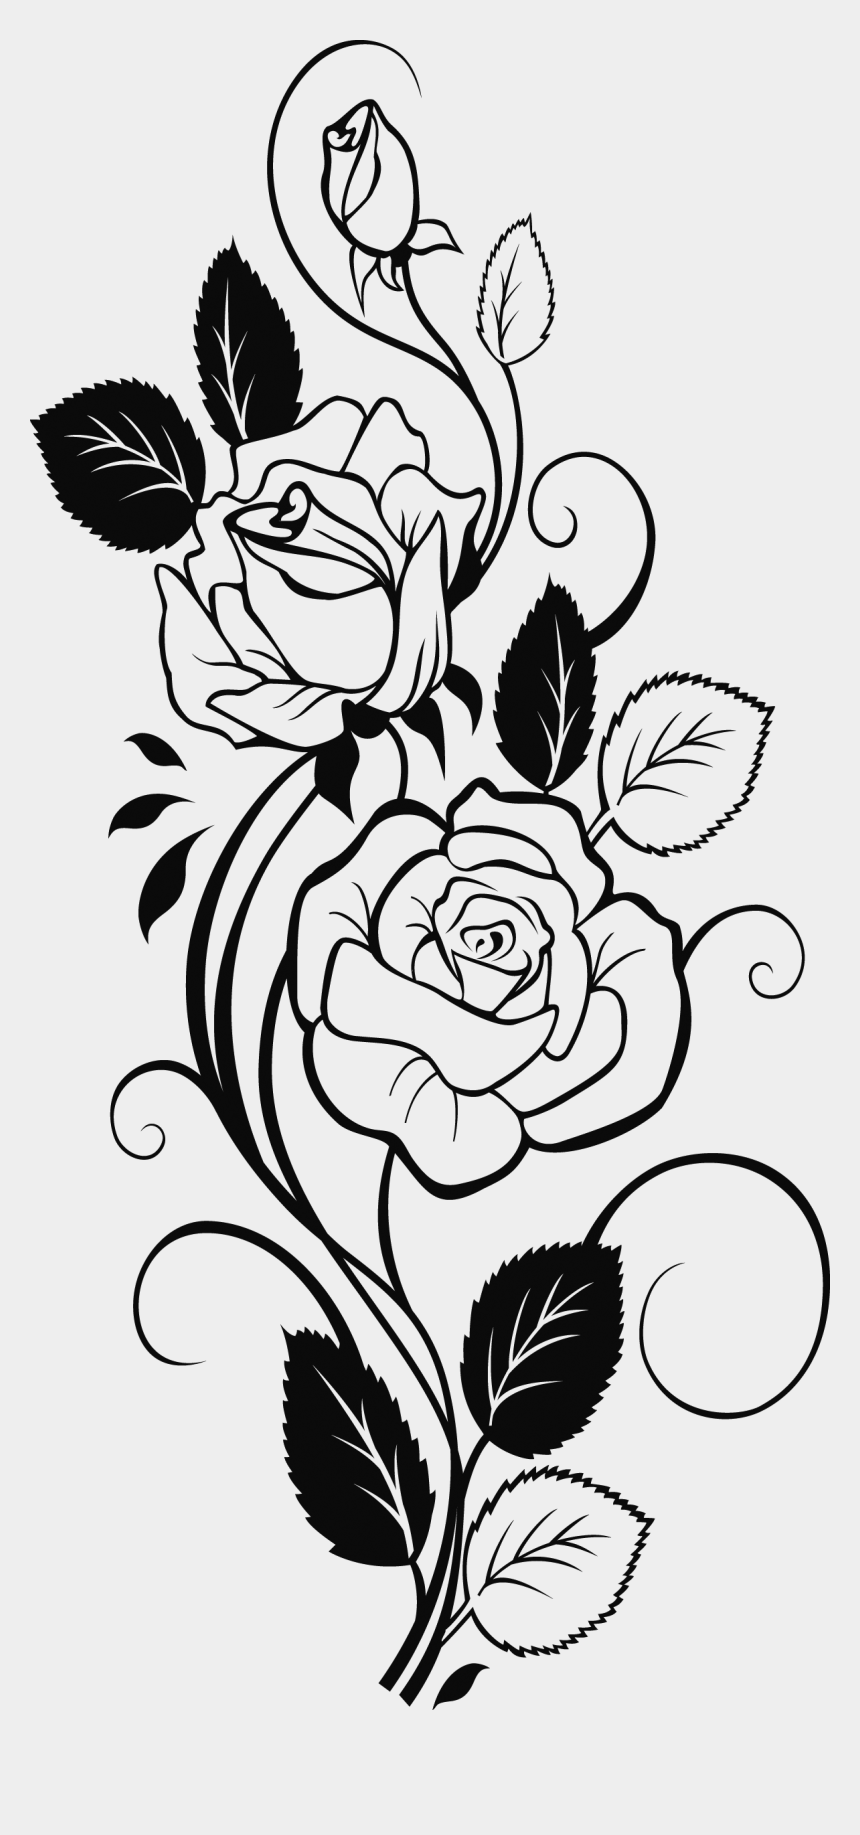 rose clipart black and white, Cartoons - 0 Cc6b5 917fb53d Orig Pyrography, Rose Stencil, Rose - Rose Flower Design Drawing